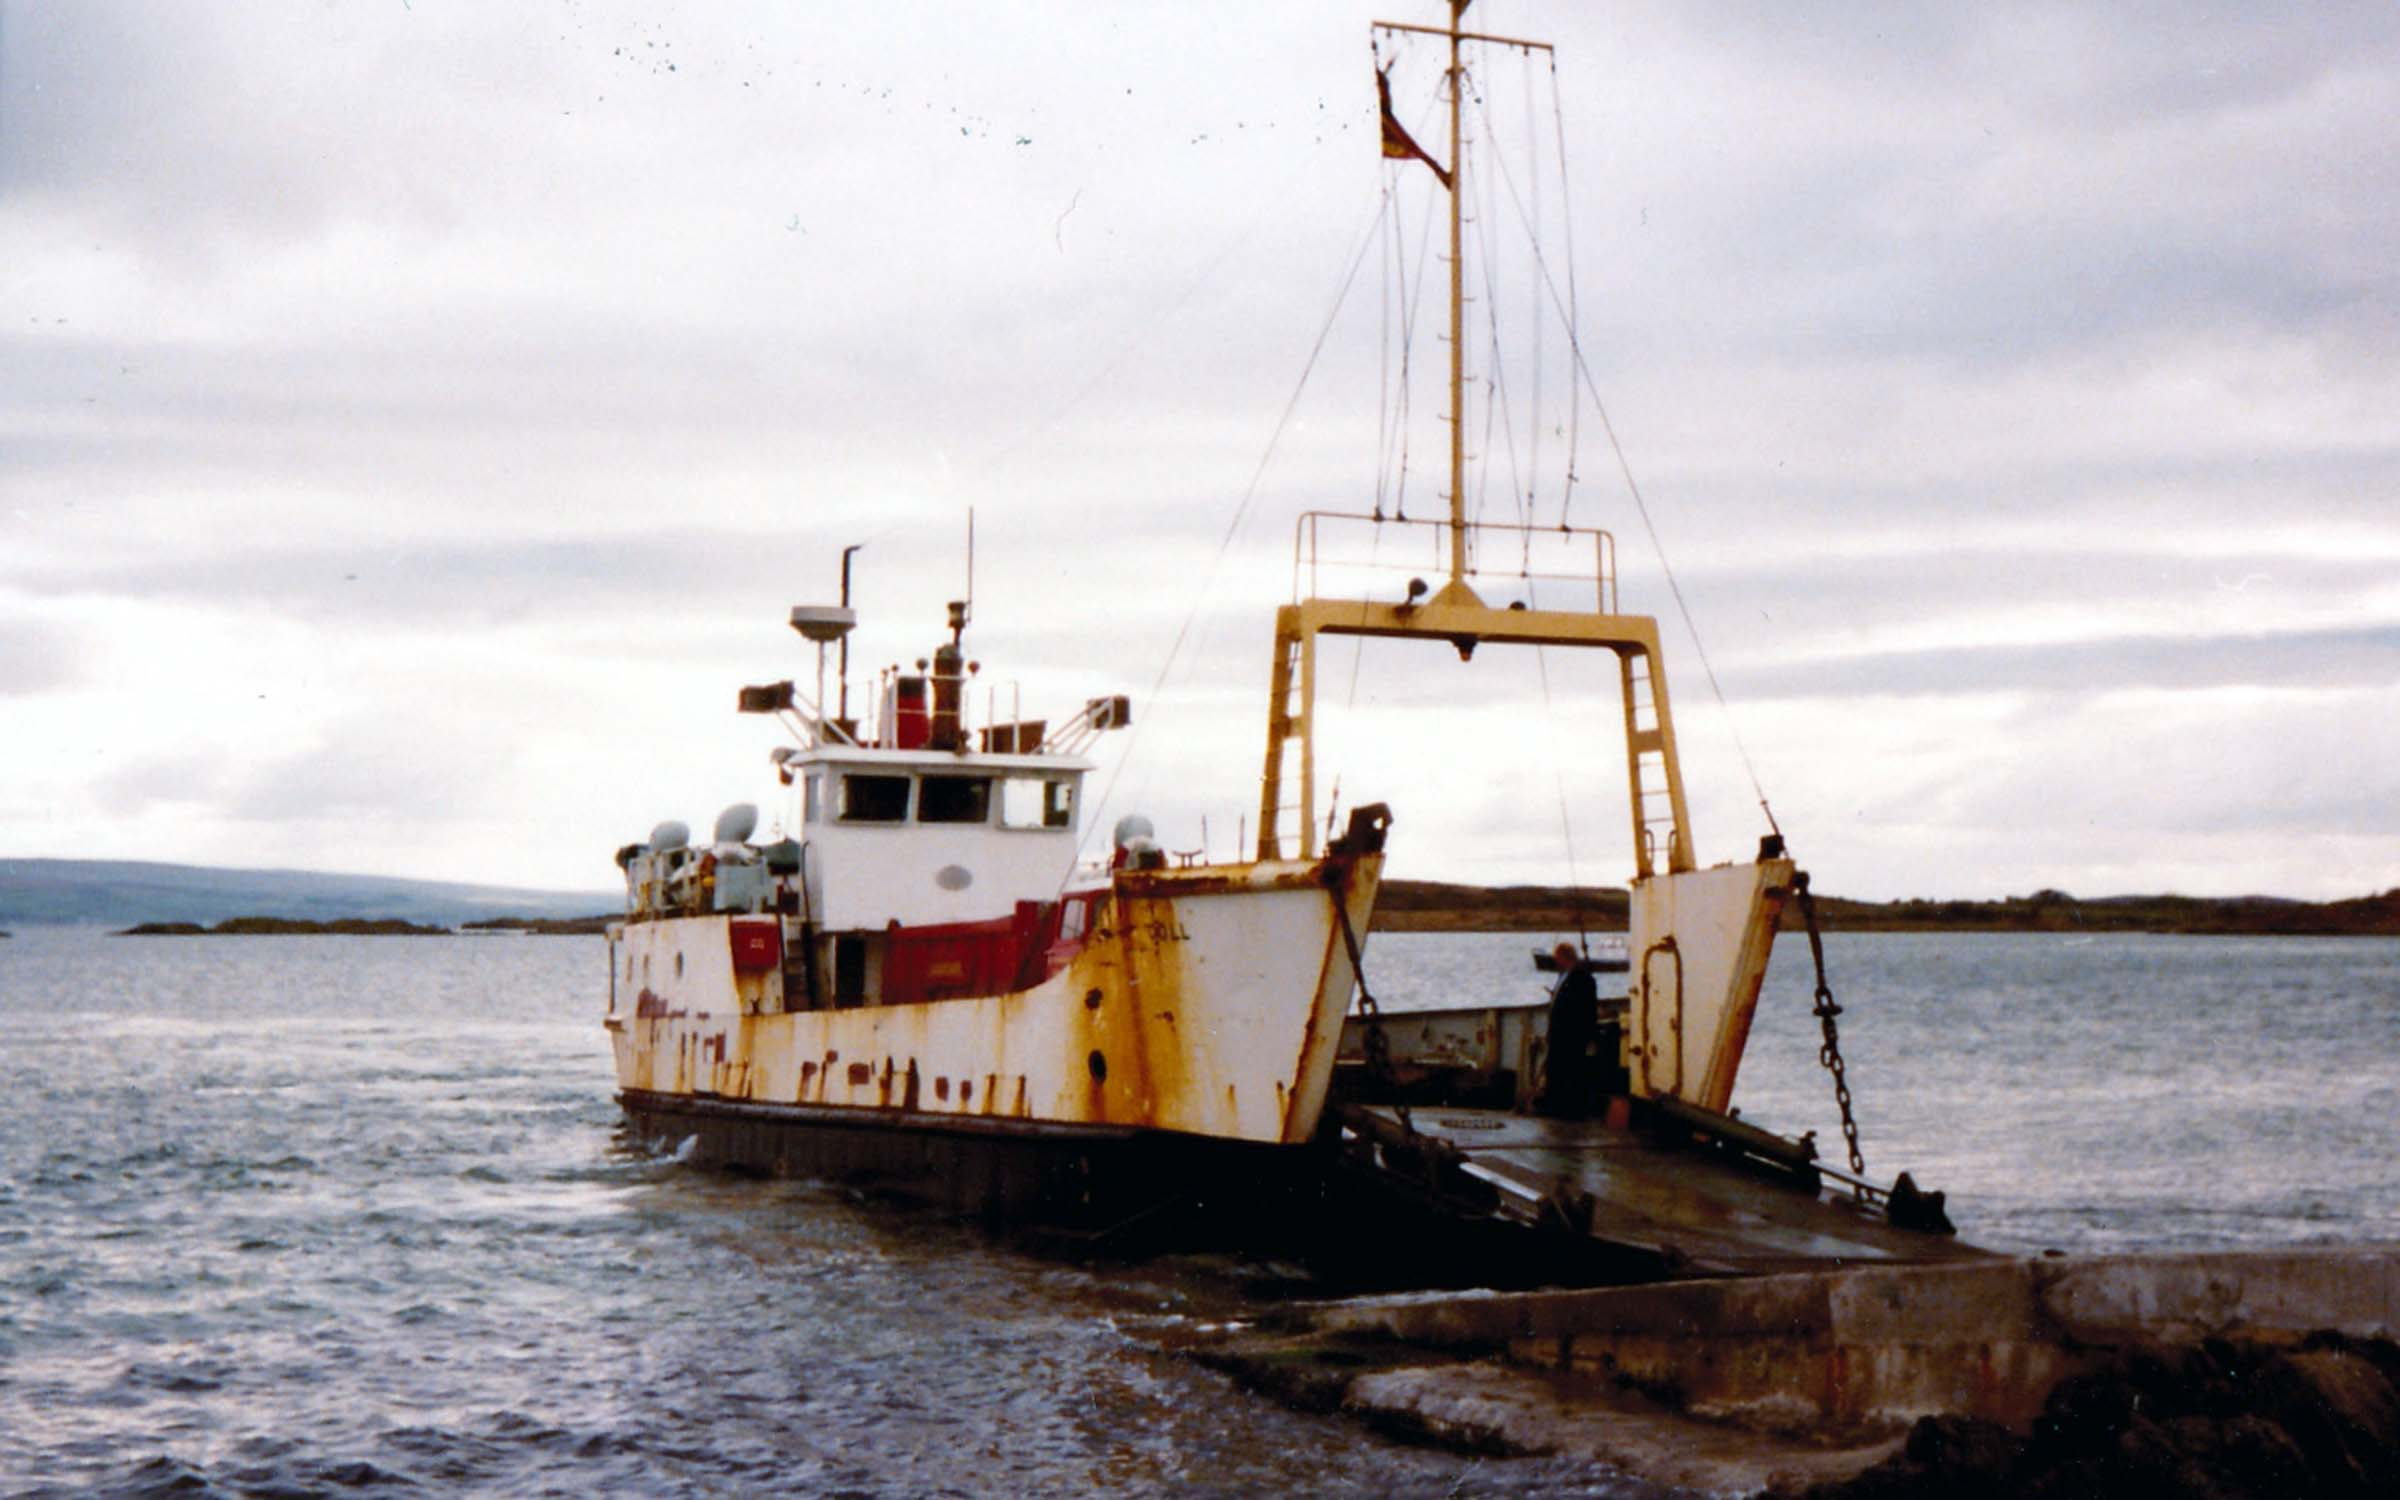 Coll at Gigha (Jim Aikman Smith)